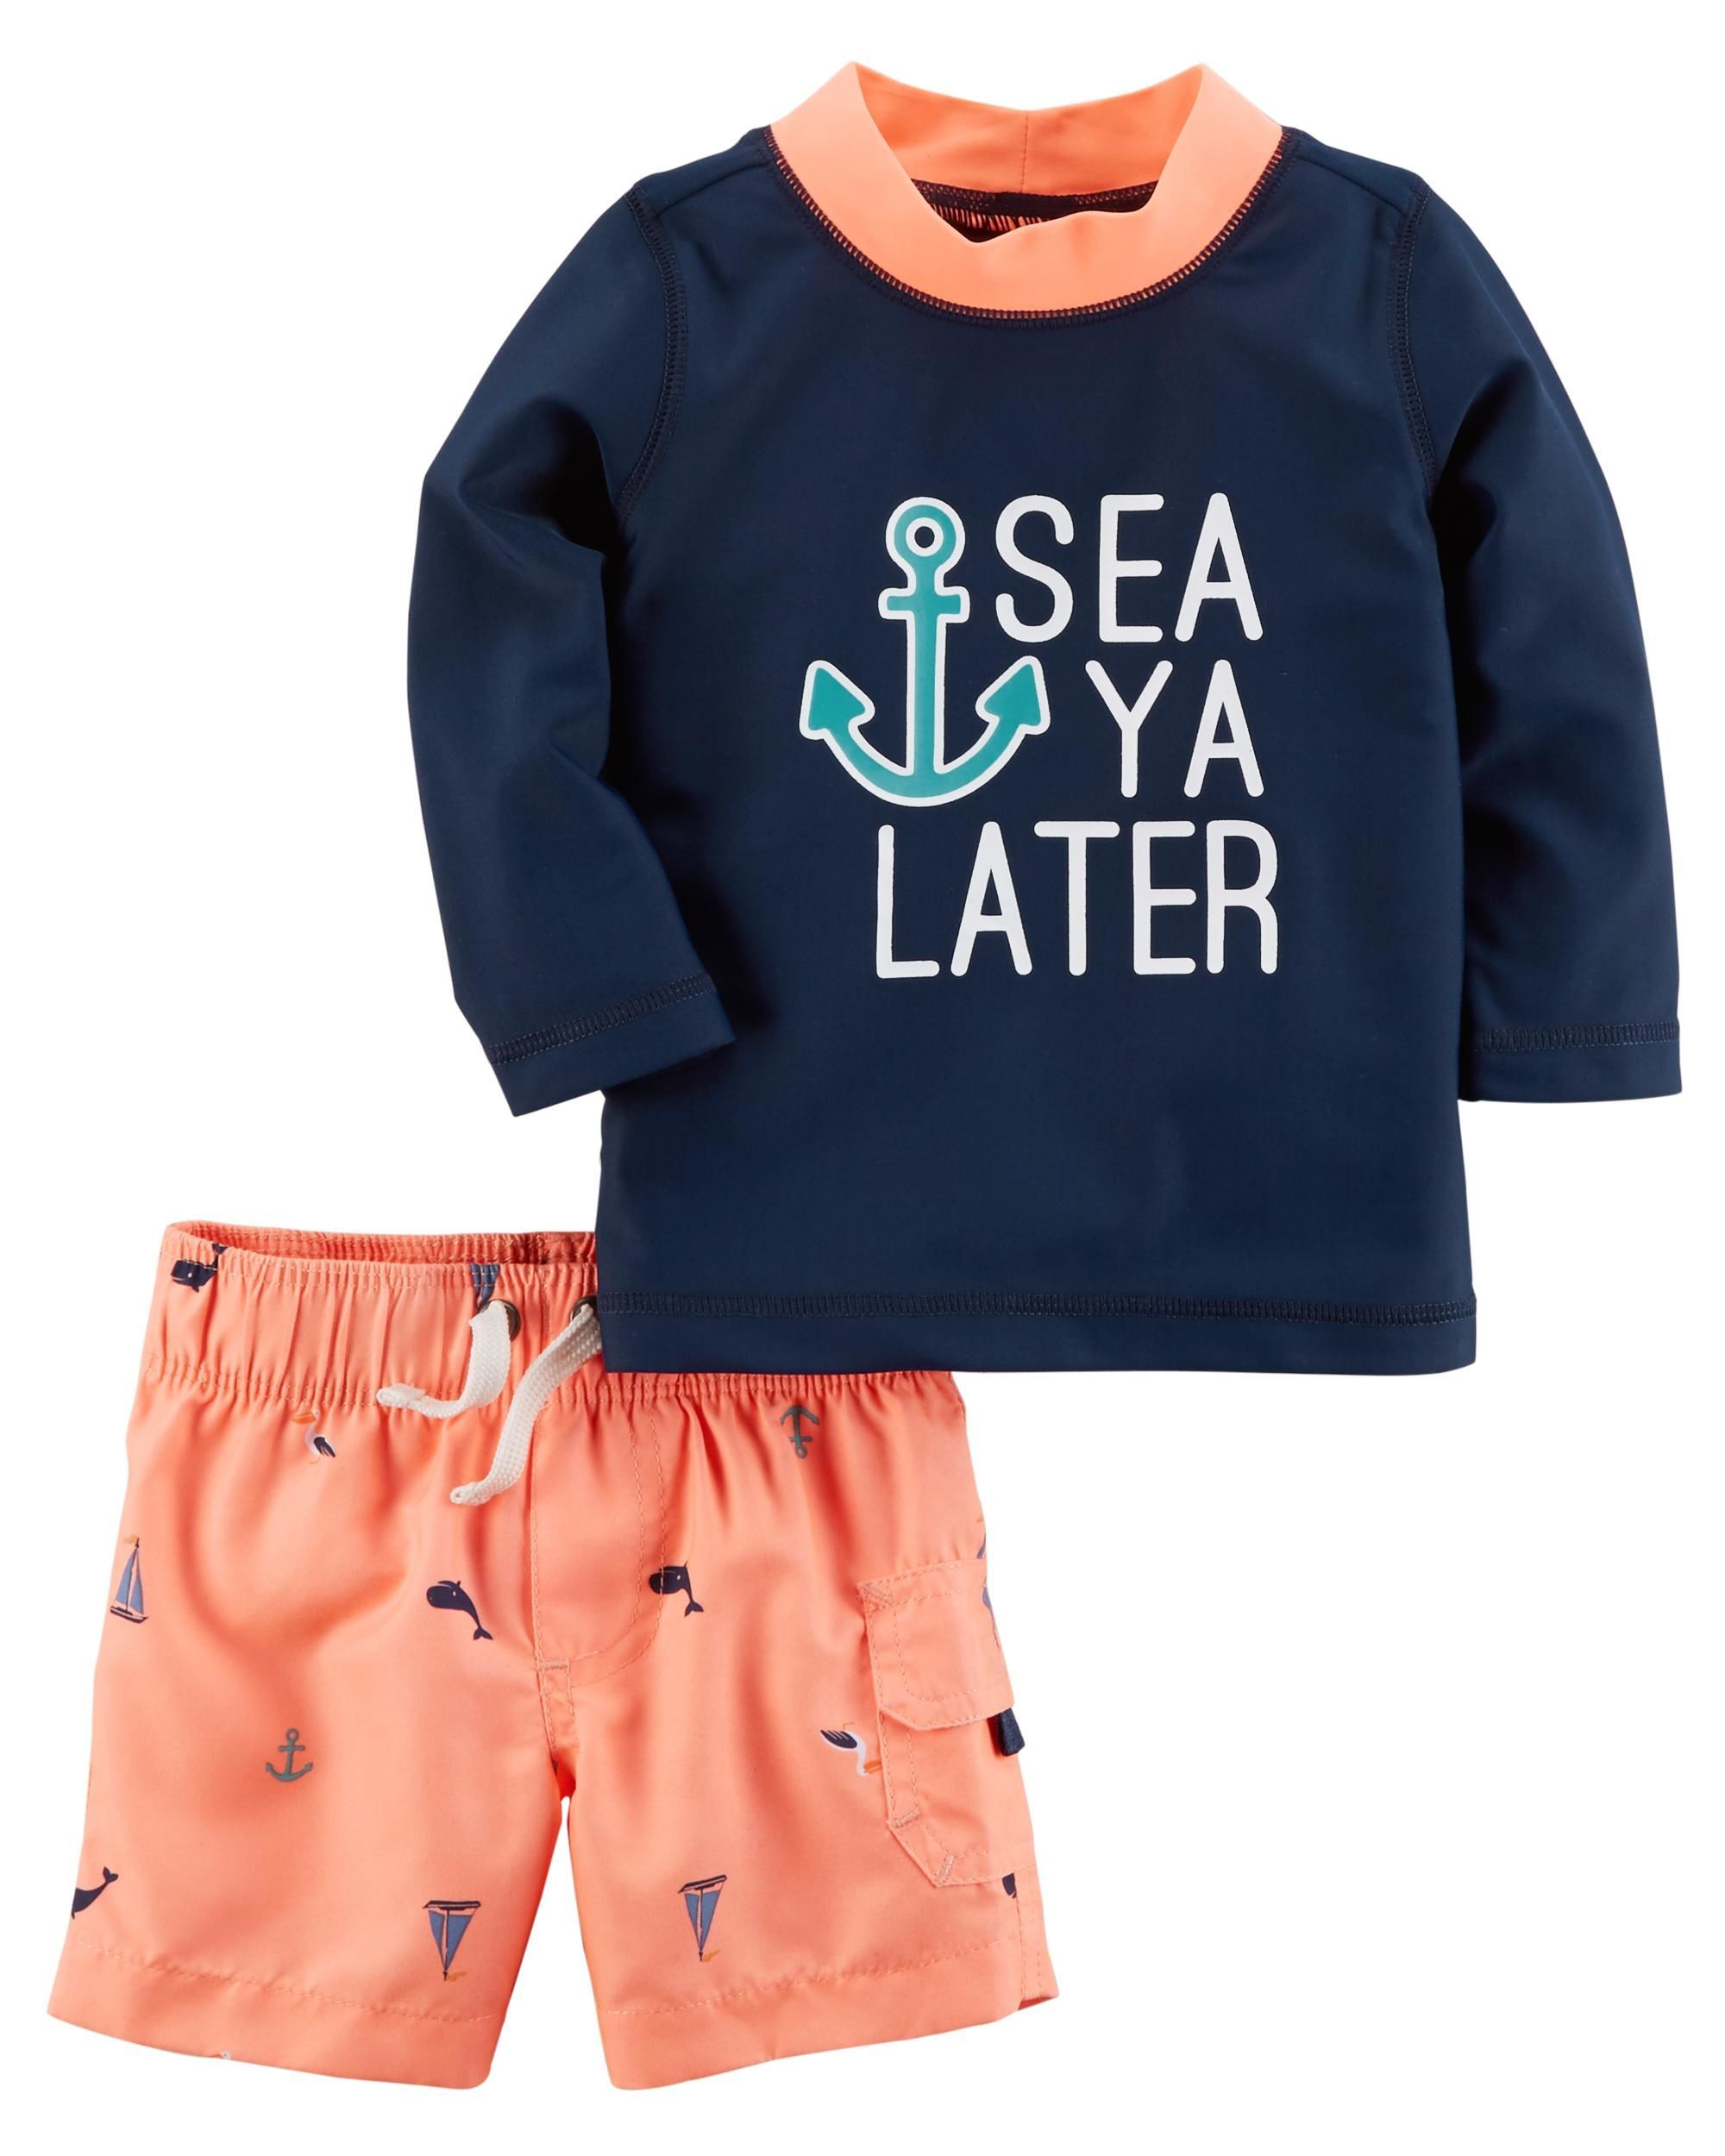 6fafb2e1eb 2-Piece Rashguard Set | Kids clothing | Carters baby boys, Baby boy ...